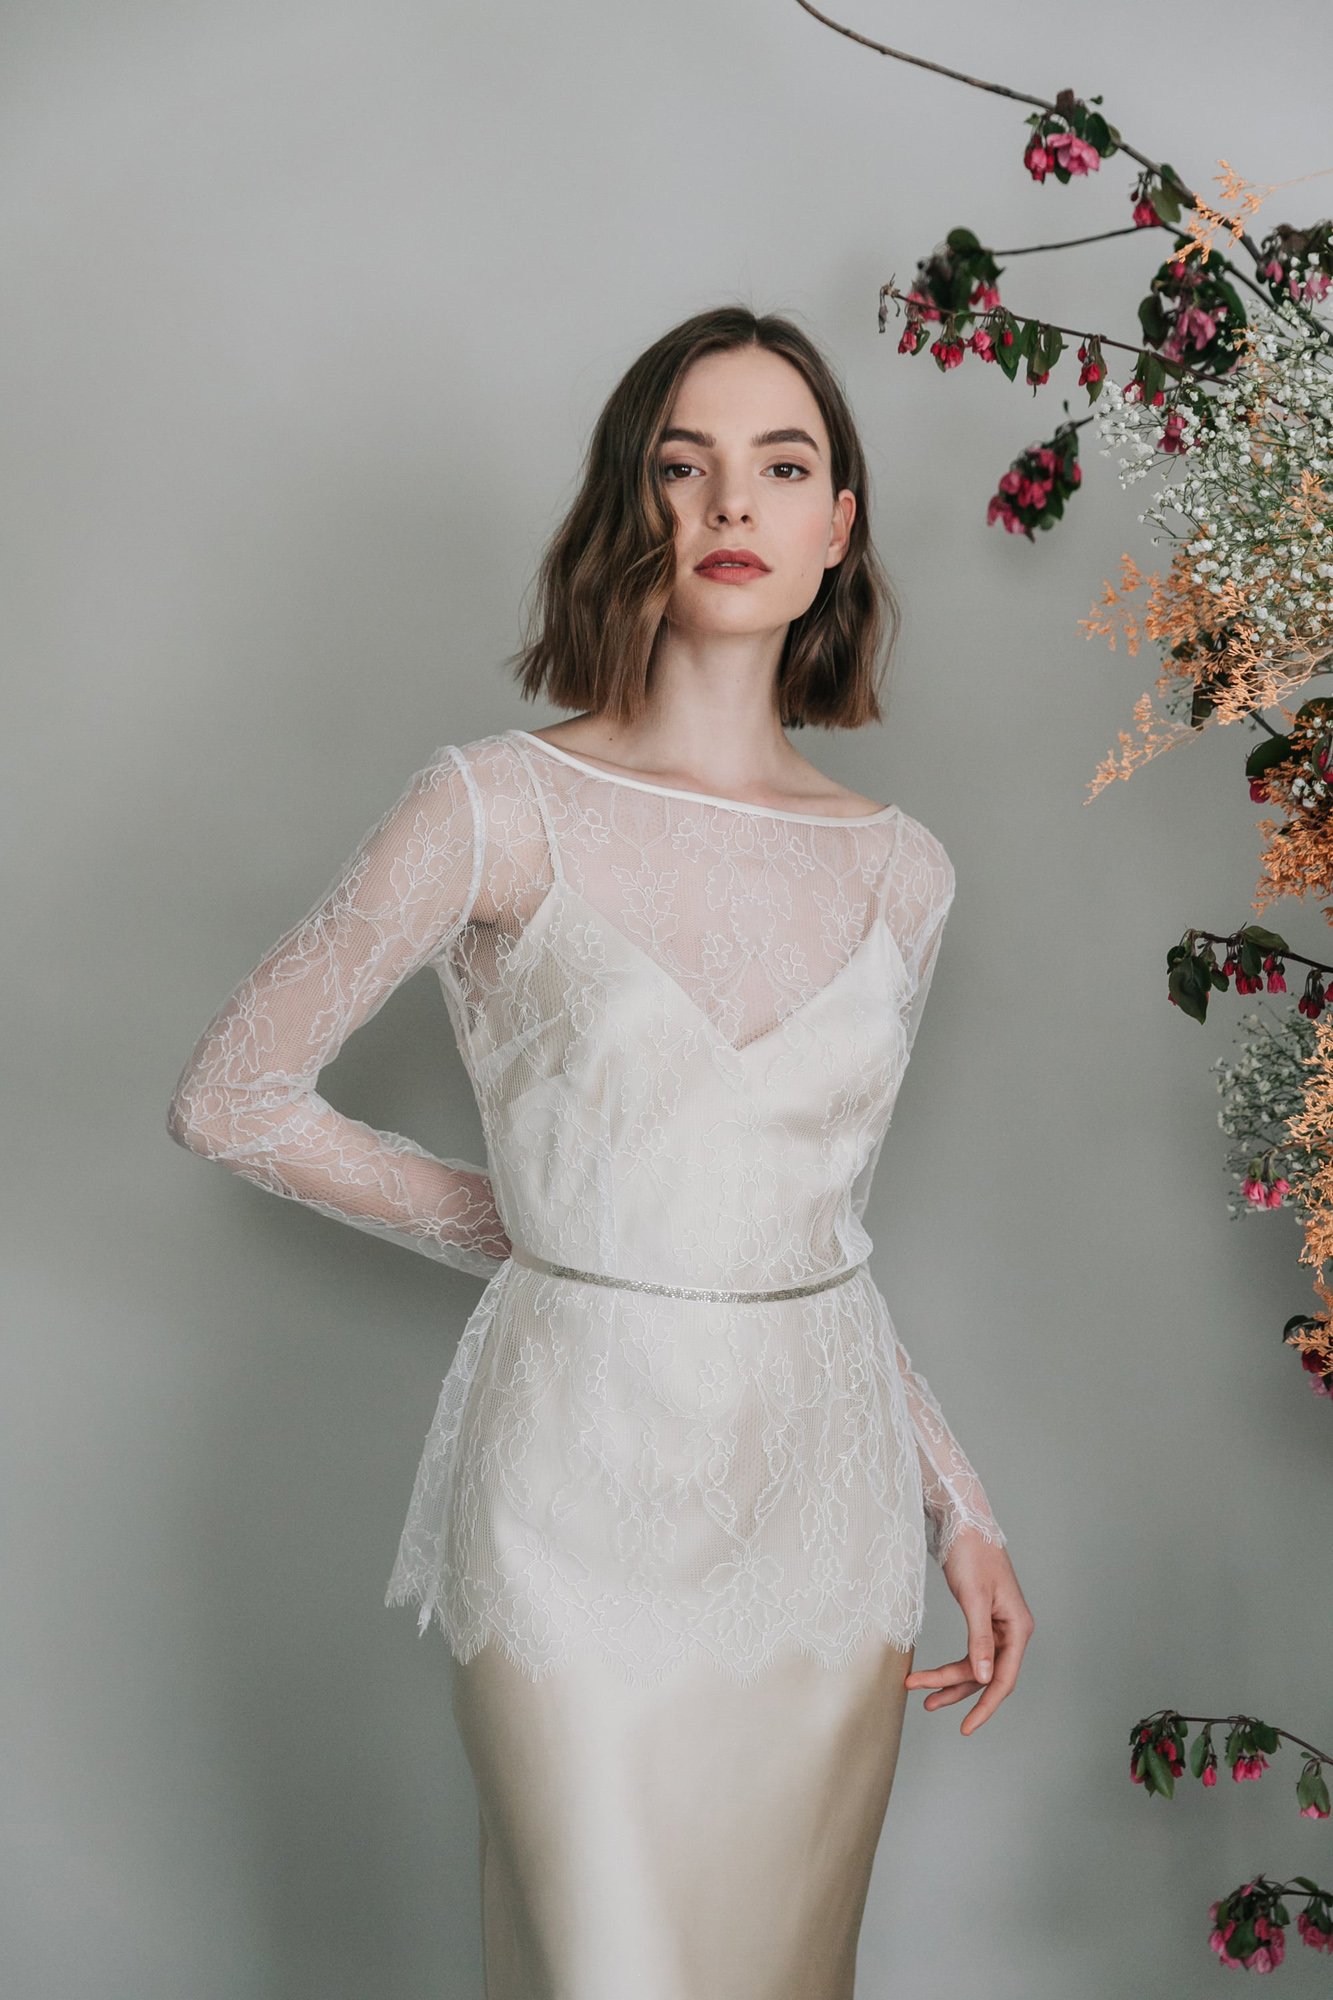 Kate-Beaumont-Sheffield-Thistle-Bridal-Separates-Two-Piece-Lace-Silk-Wedding-Gown-1.jpg